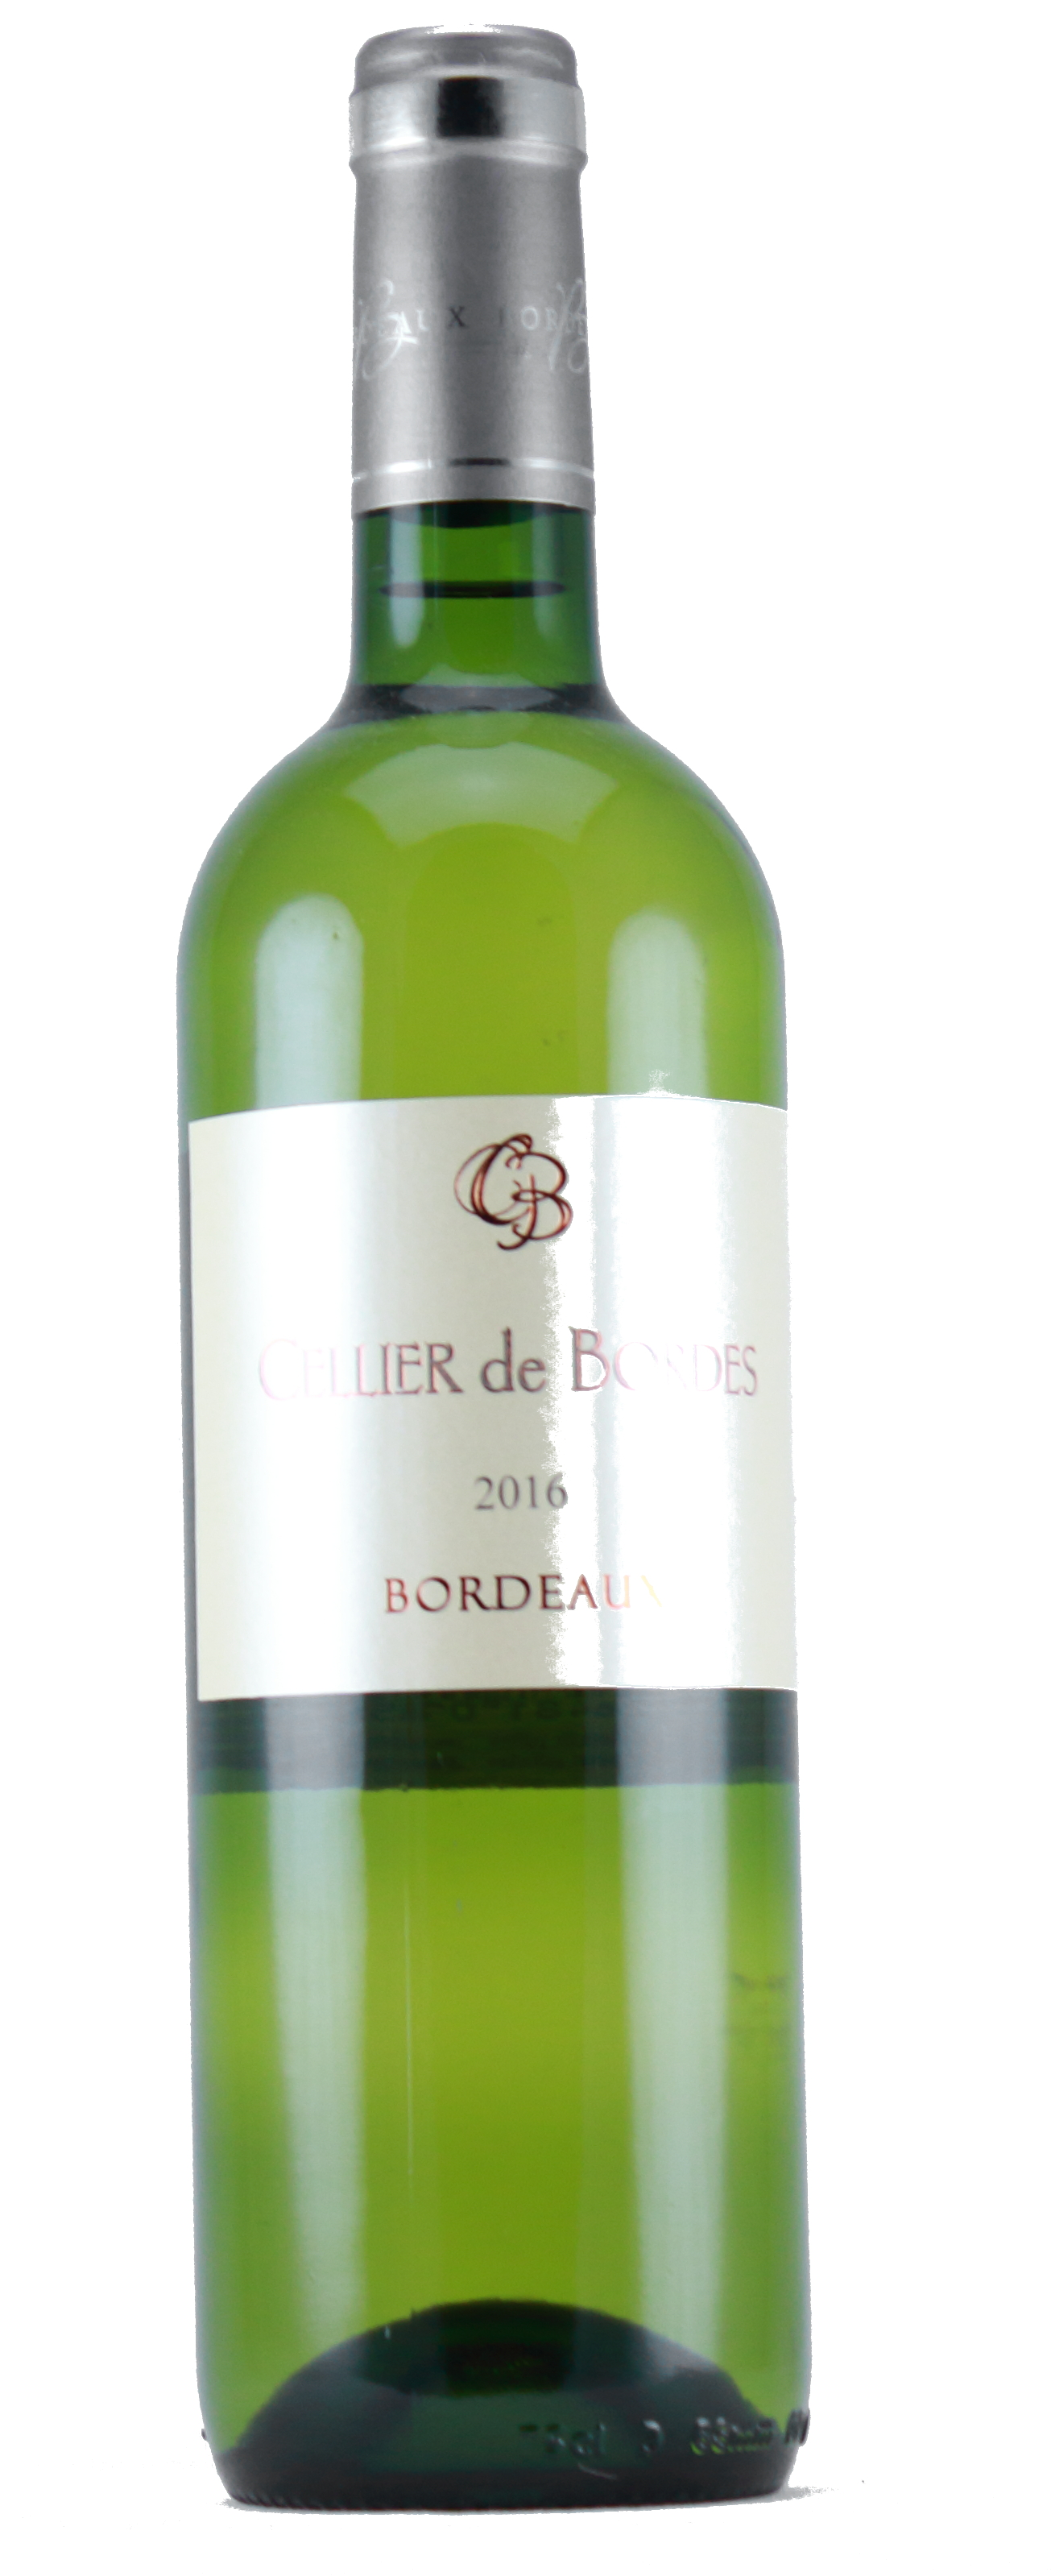 Cellier de Bordes, Bordeaux Blanc